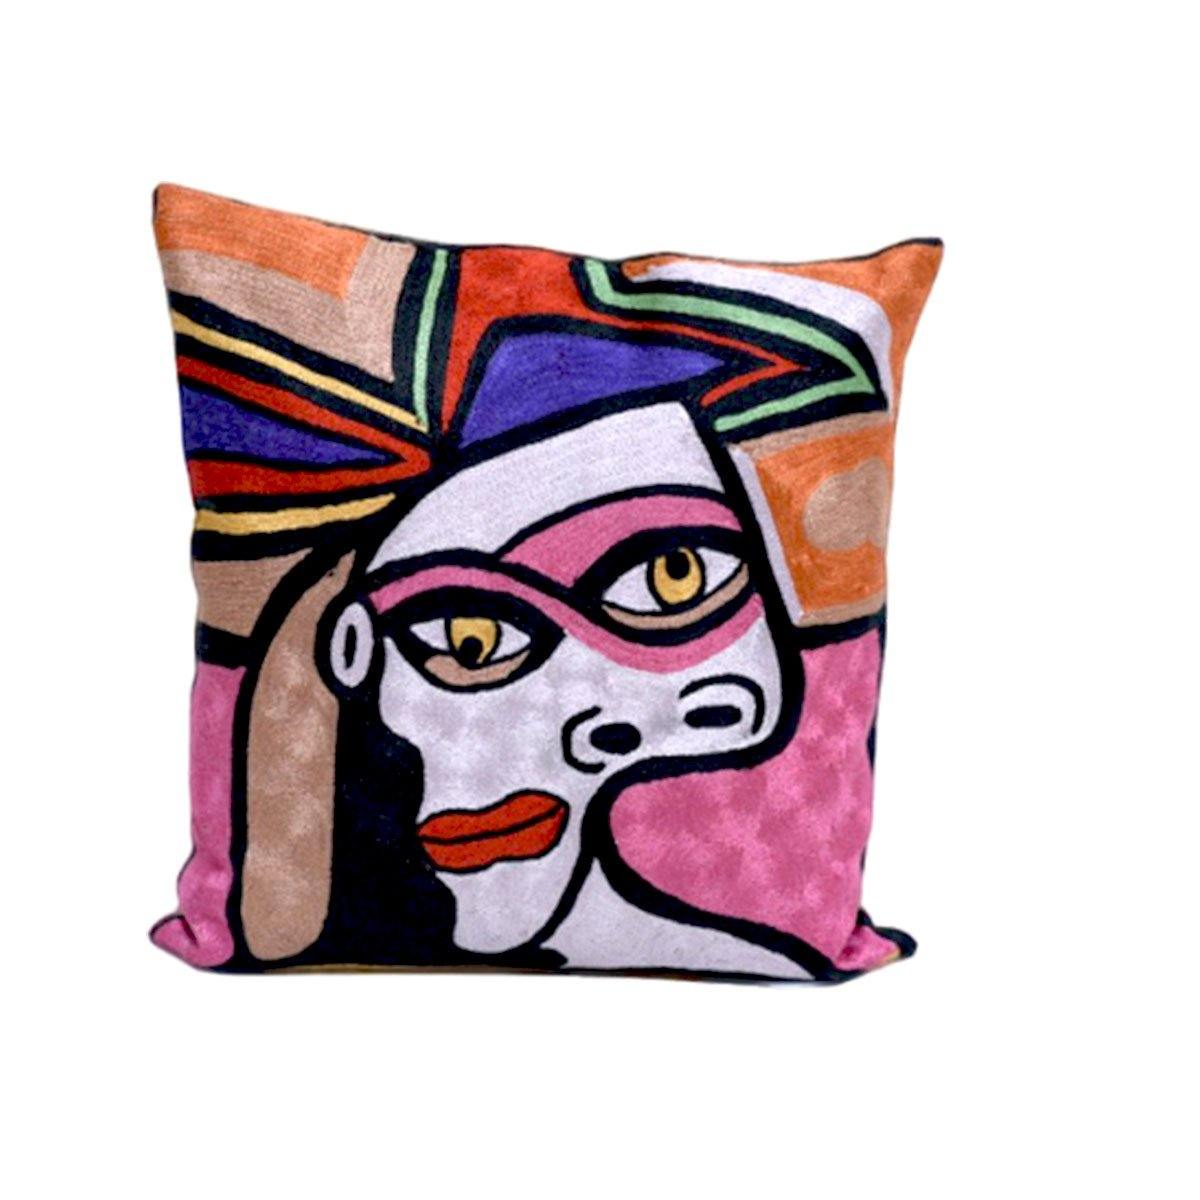 Double Face Embroidery Cushions